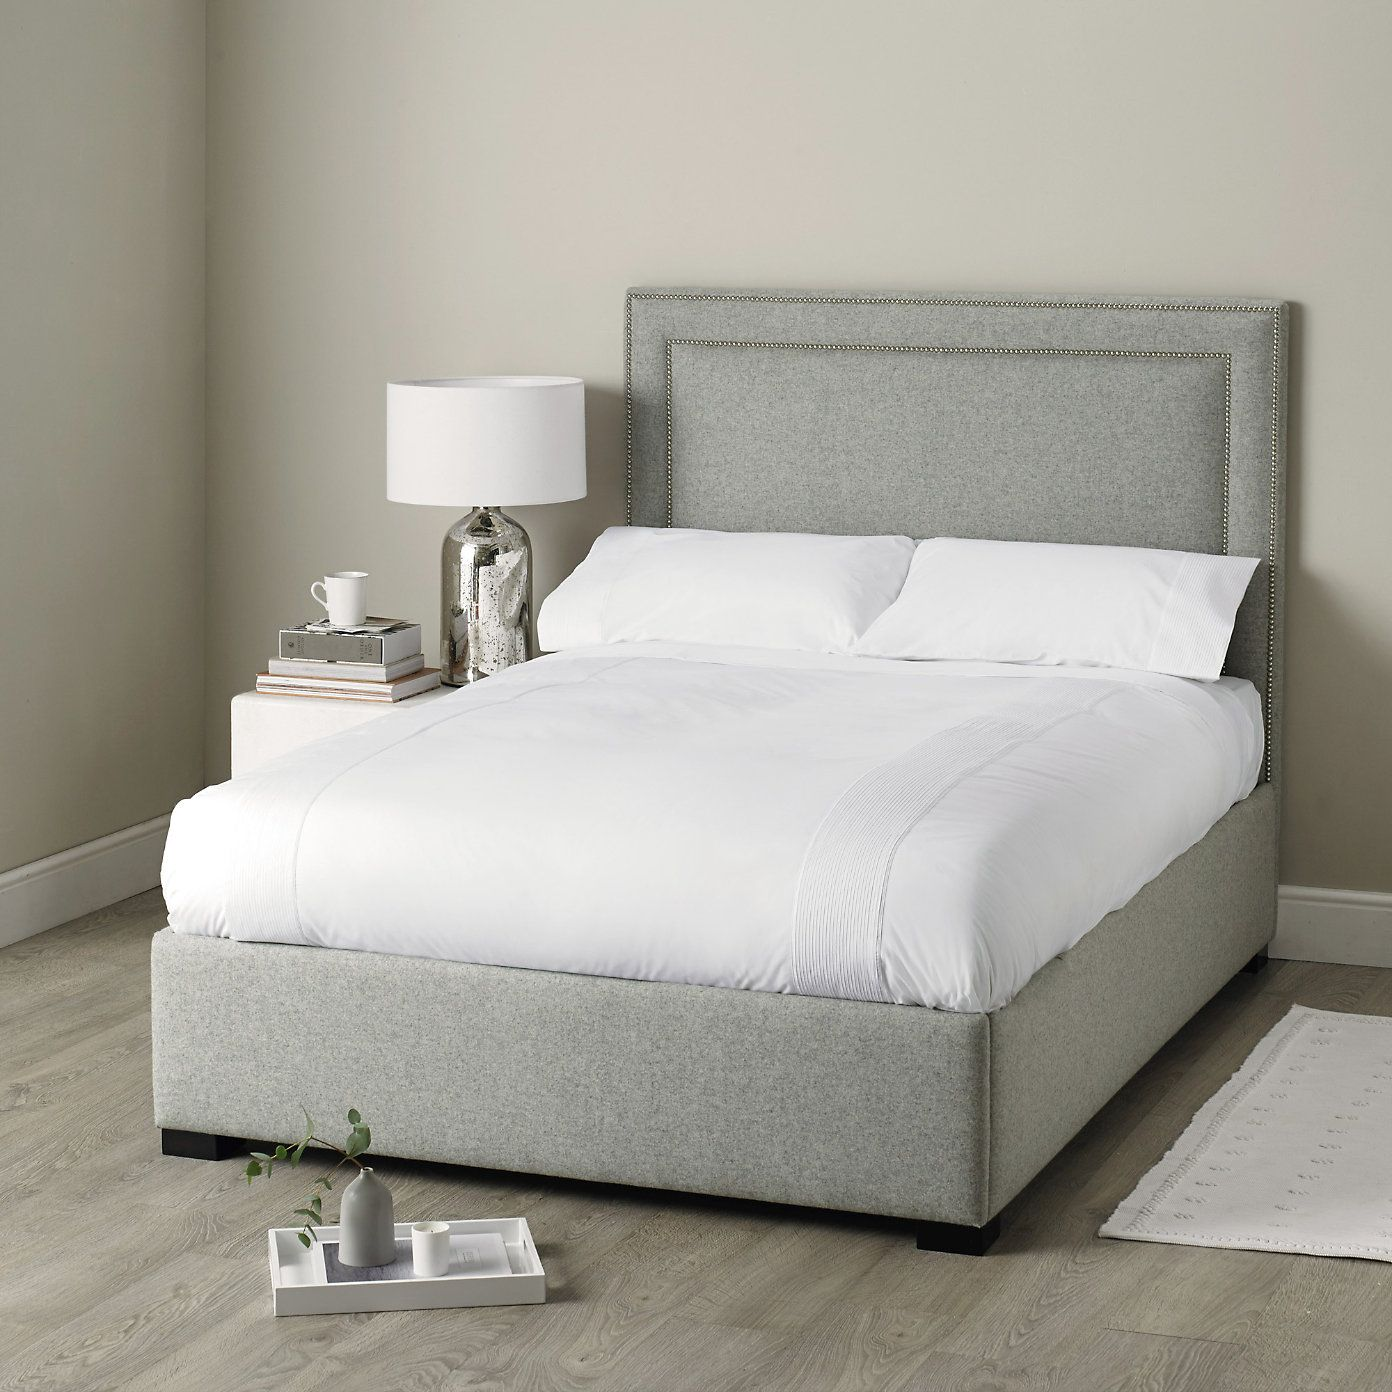 Cavendish bed bed thewhitecompany klc project sourcing